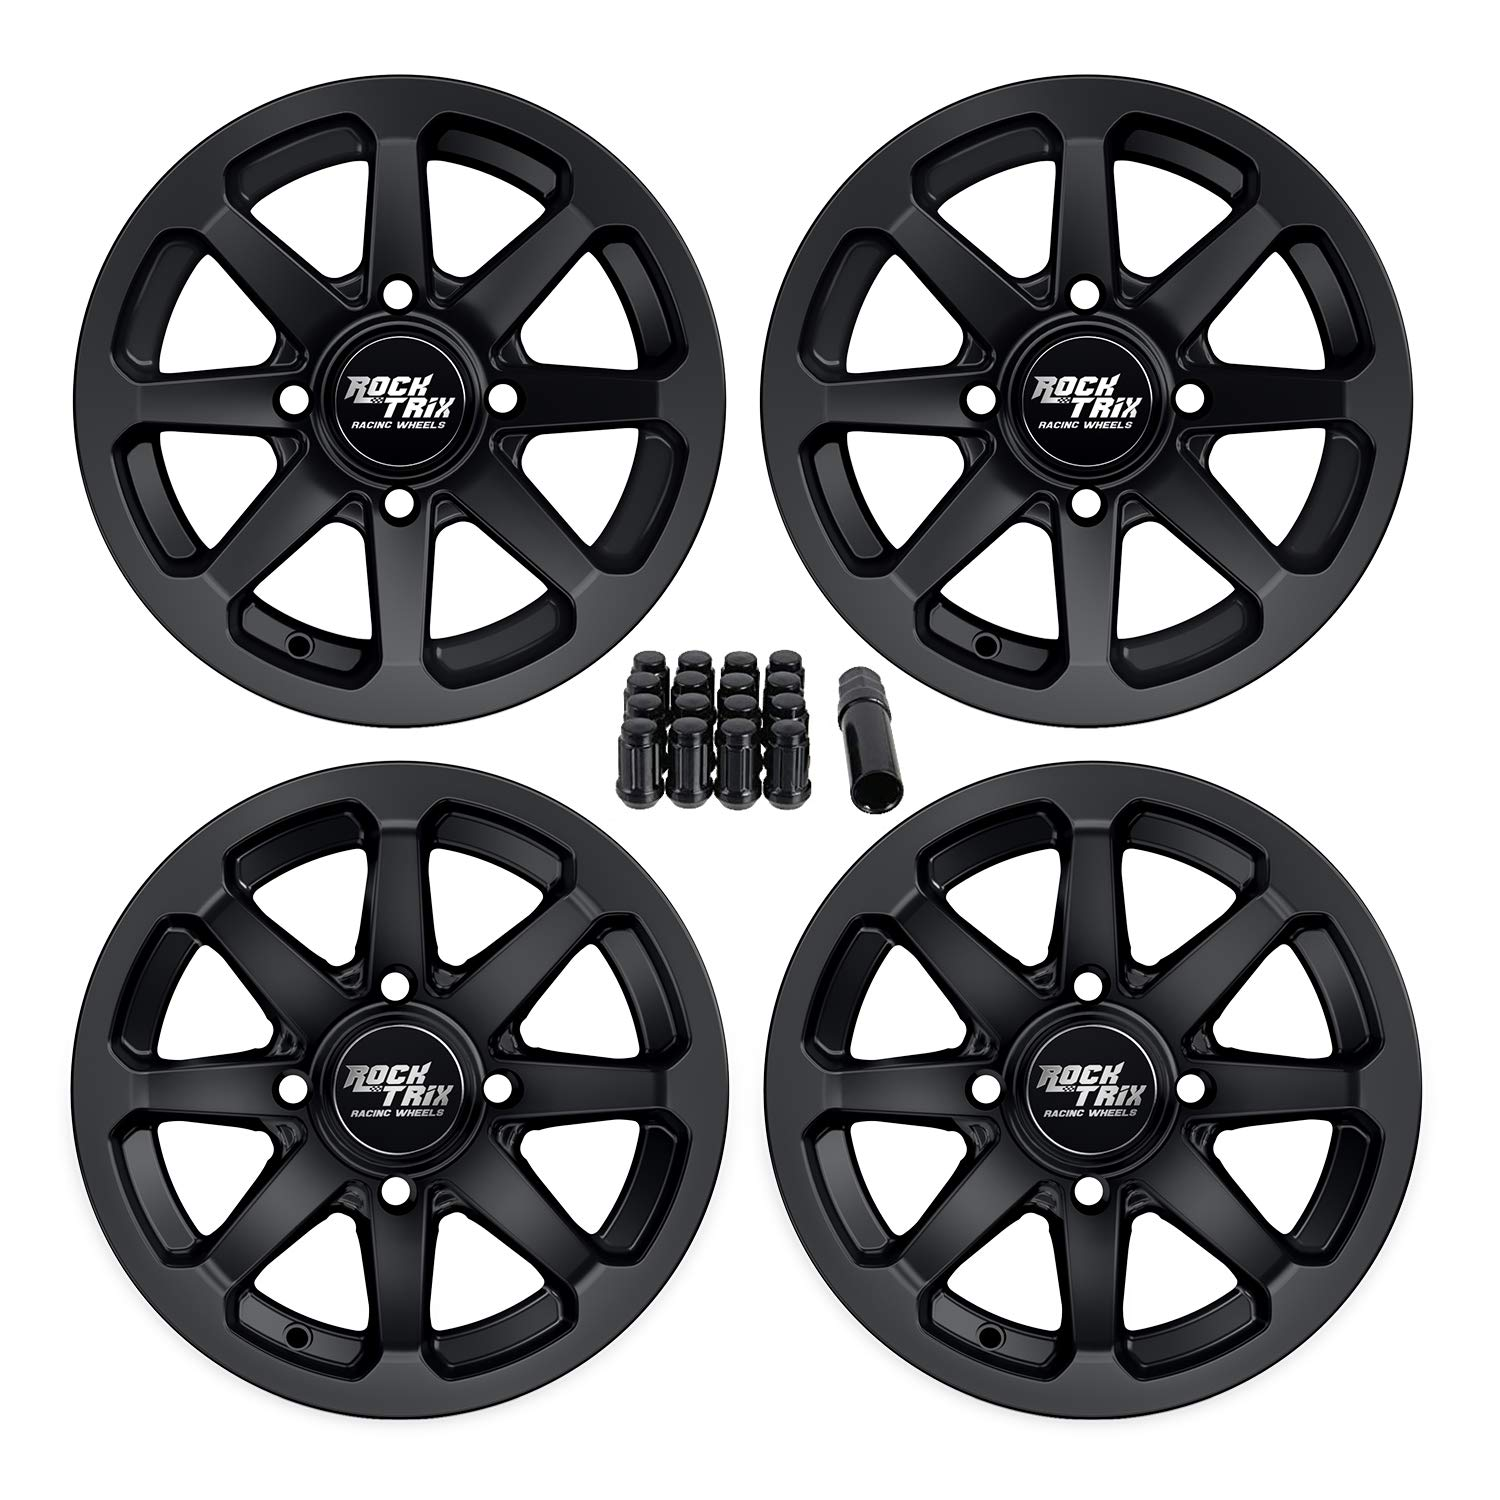 RockTrix RT102 12'' ATV Wheels 4x110 Rims | 12x7 | 5+2 F / 2+5 R Offset | 10x1.25 Spline Lug nuts | SRA Vehicles Honda Foreman Rancher Fourtrax Rubicon Suzuki Vinson Solid Rear Axle, honda rancher rims